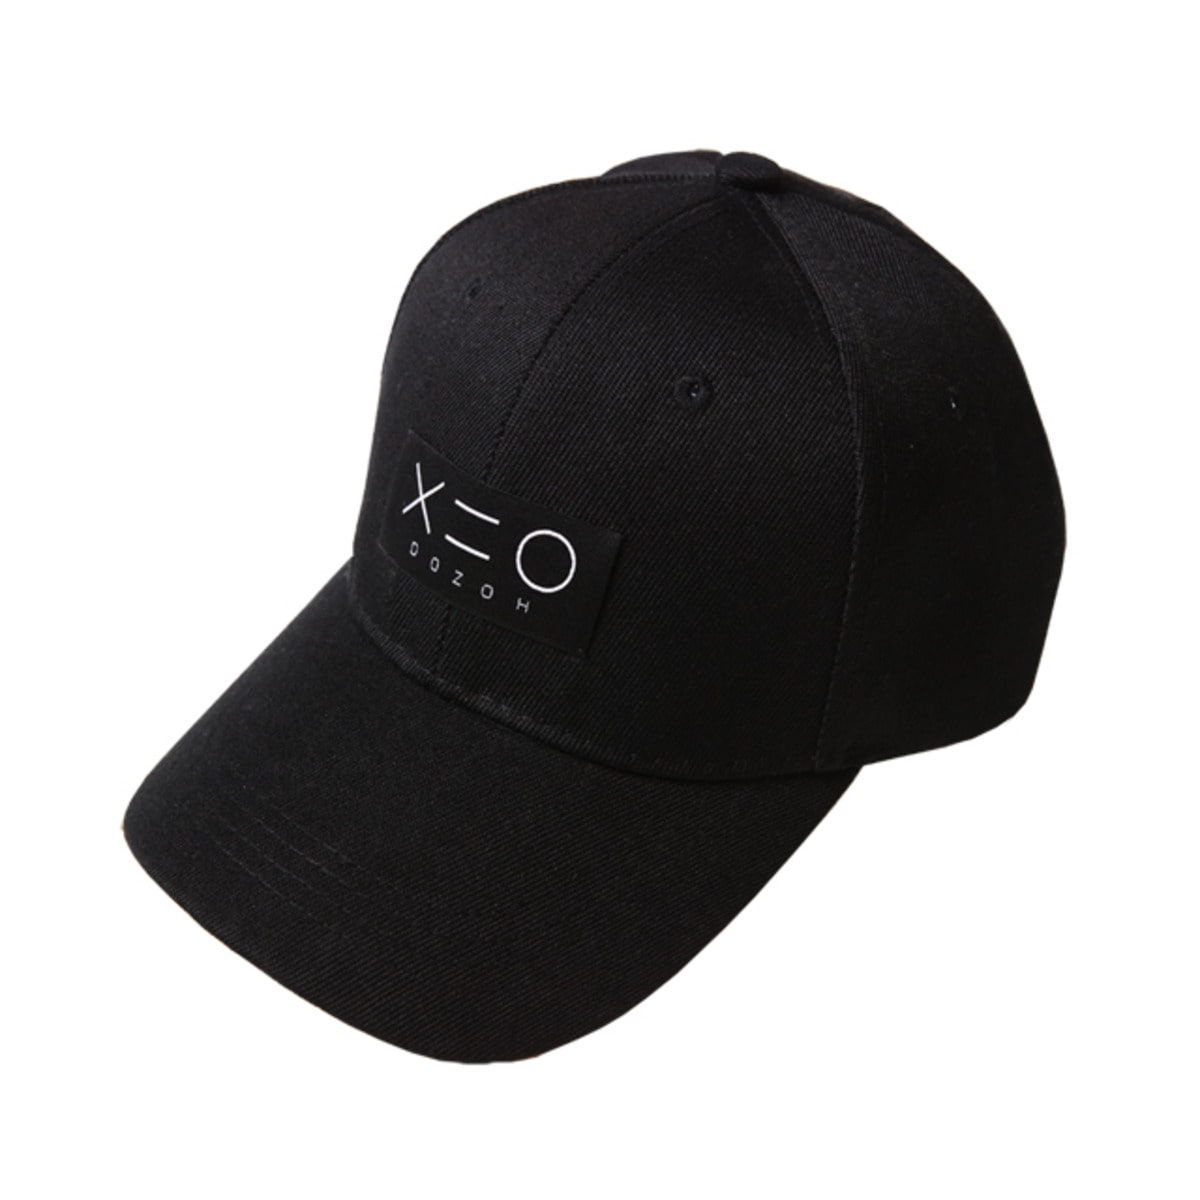 BLACK DOZOH LABEL CAP